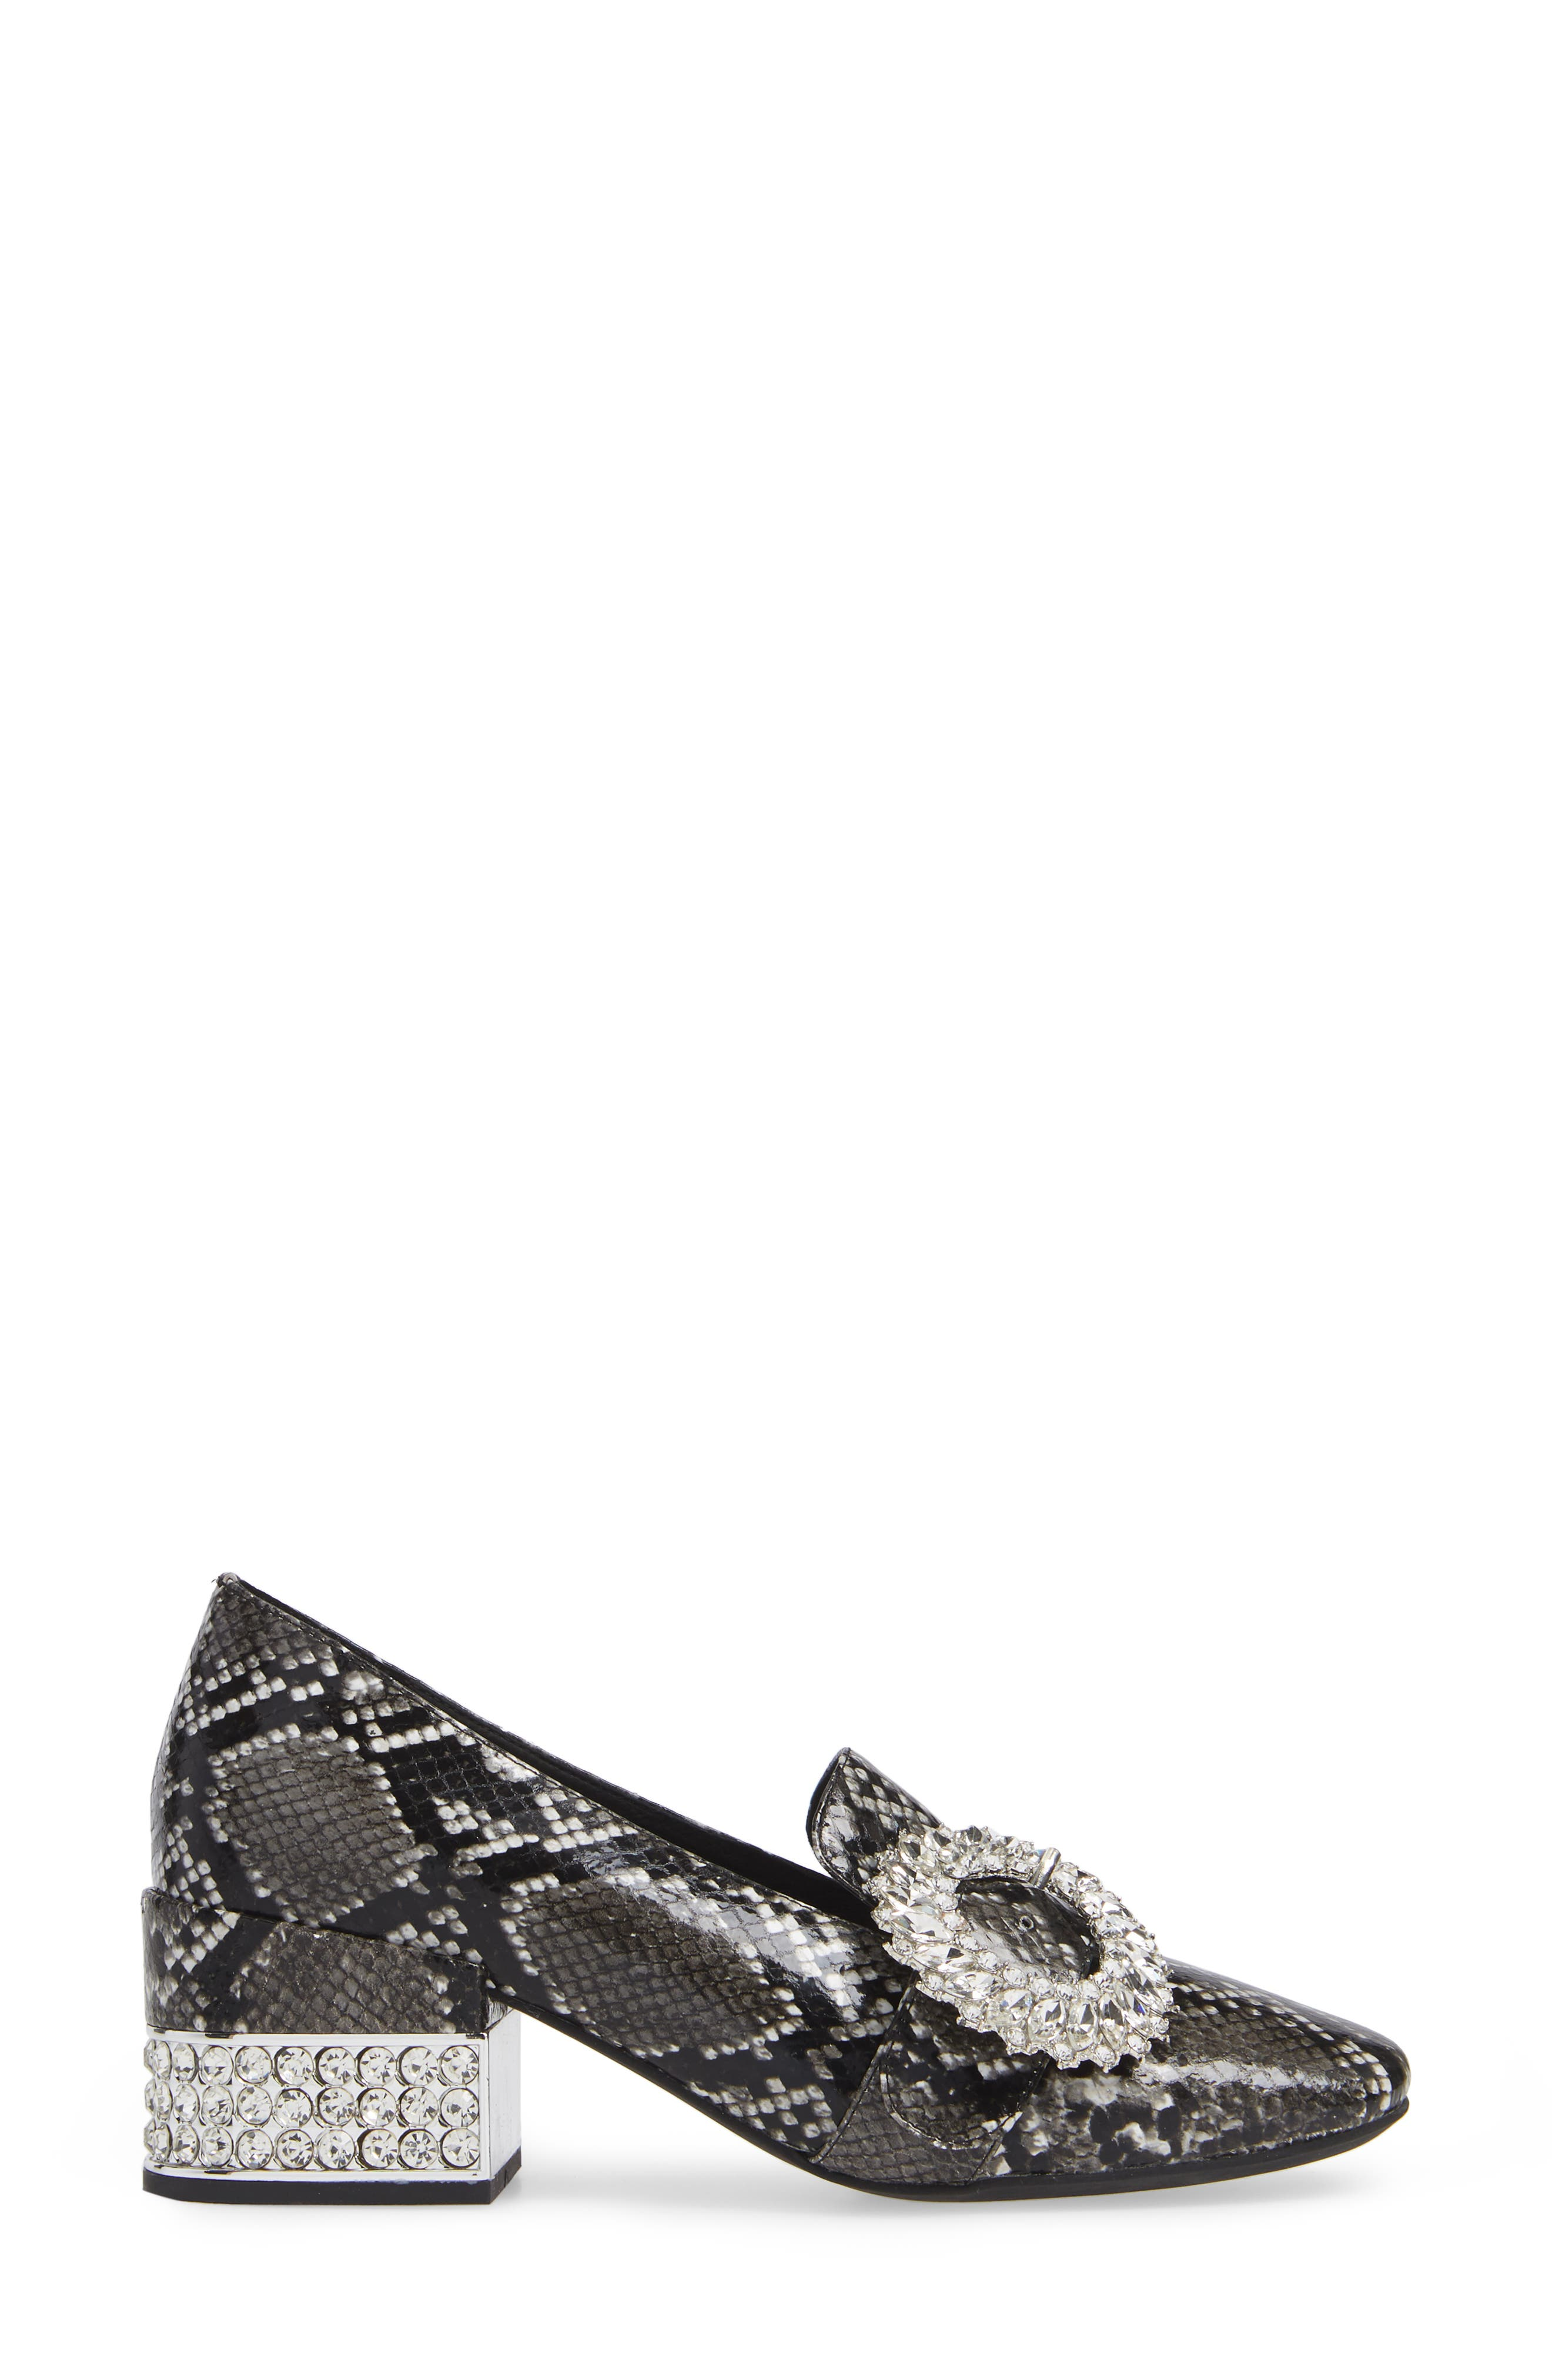 Louisa Pump,                             Alternate thumbnail 3, color,                             SNAKE PRINT LEATHER/ SILVER